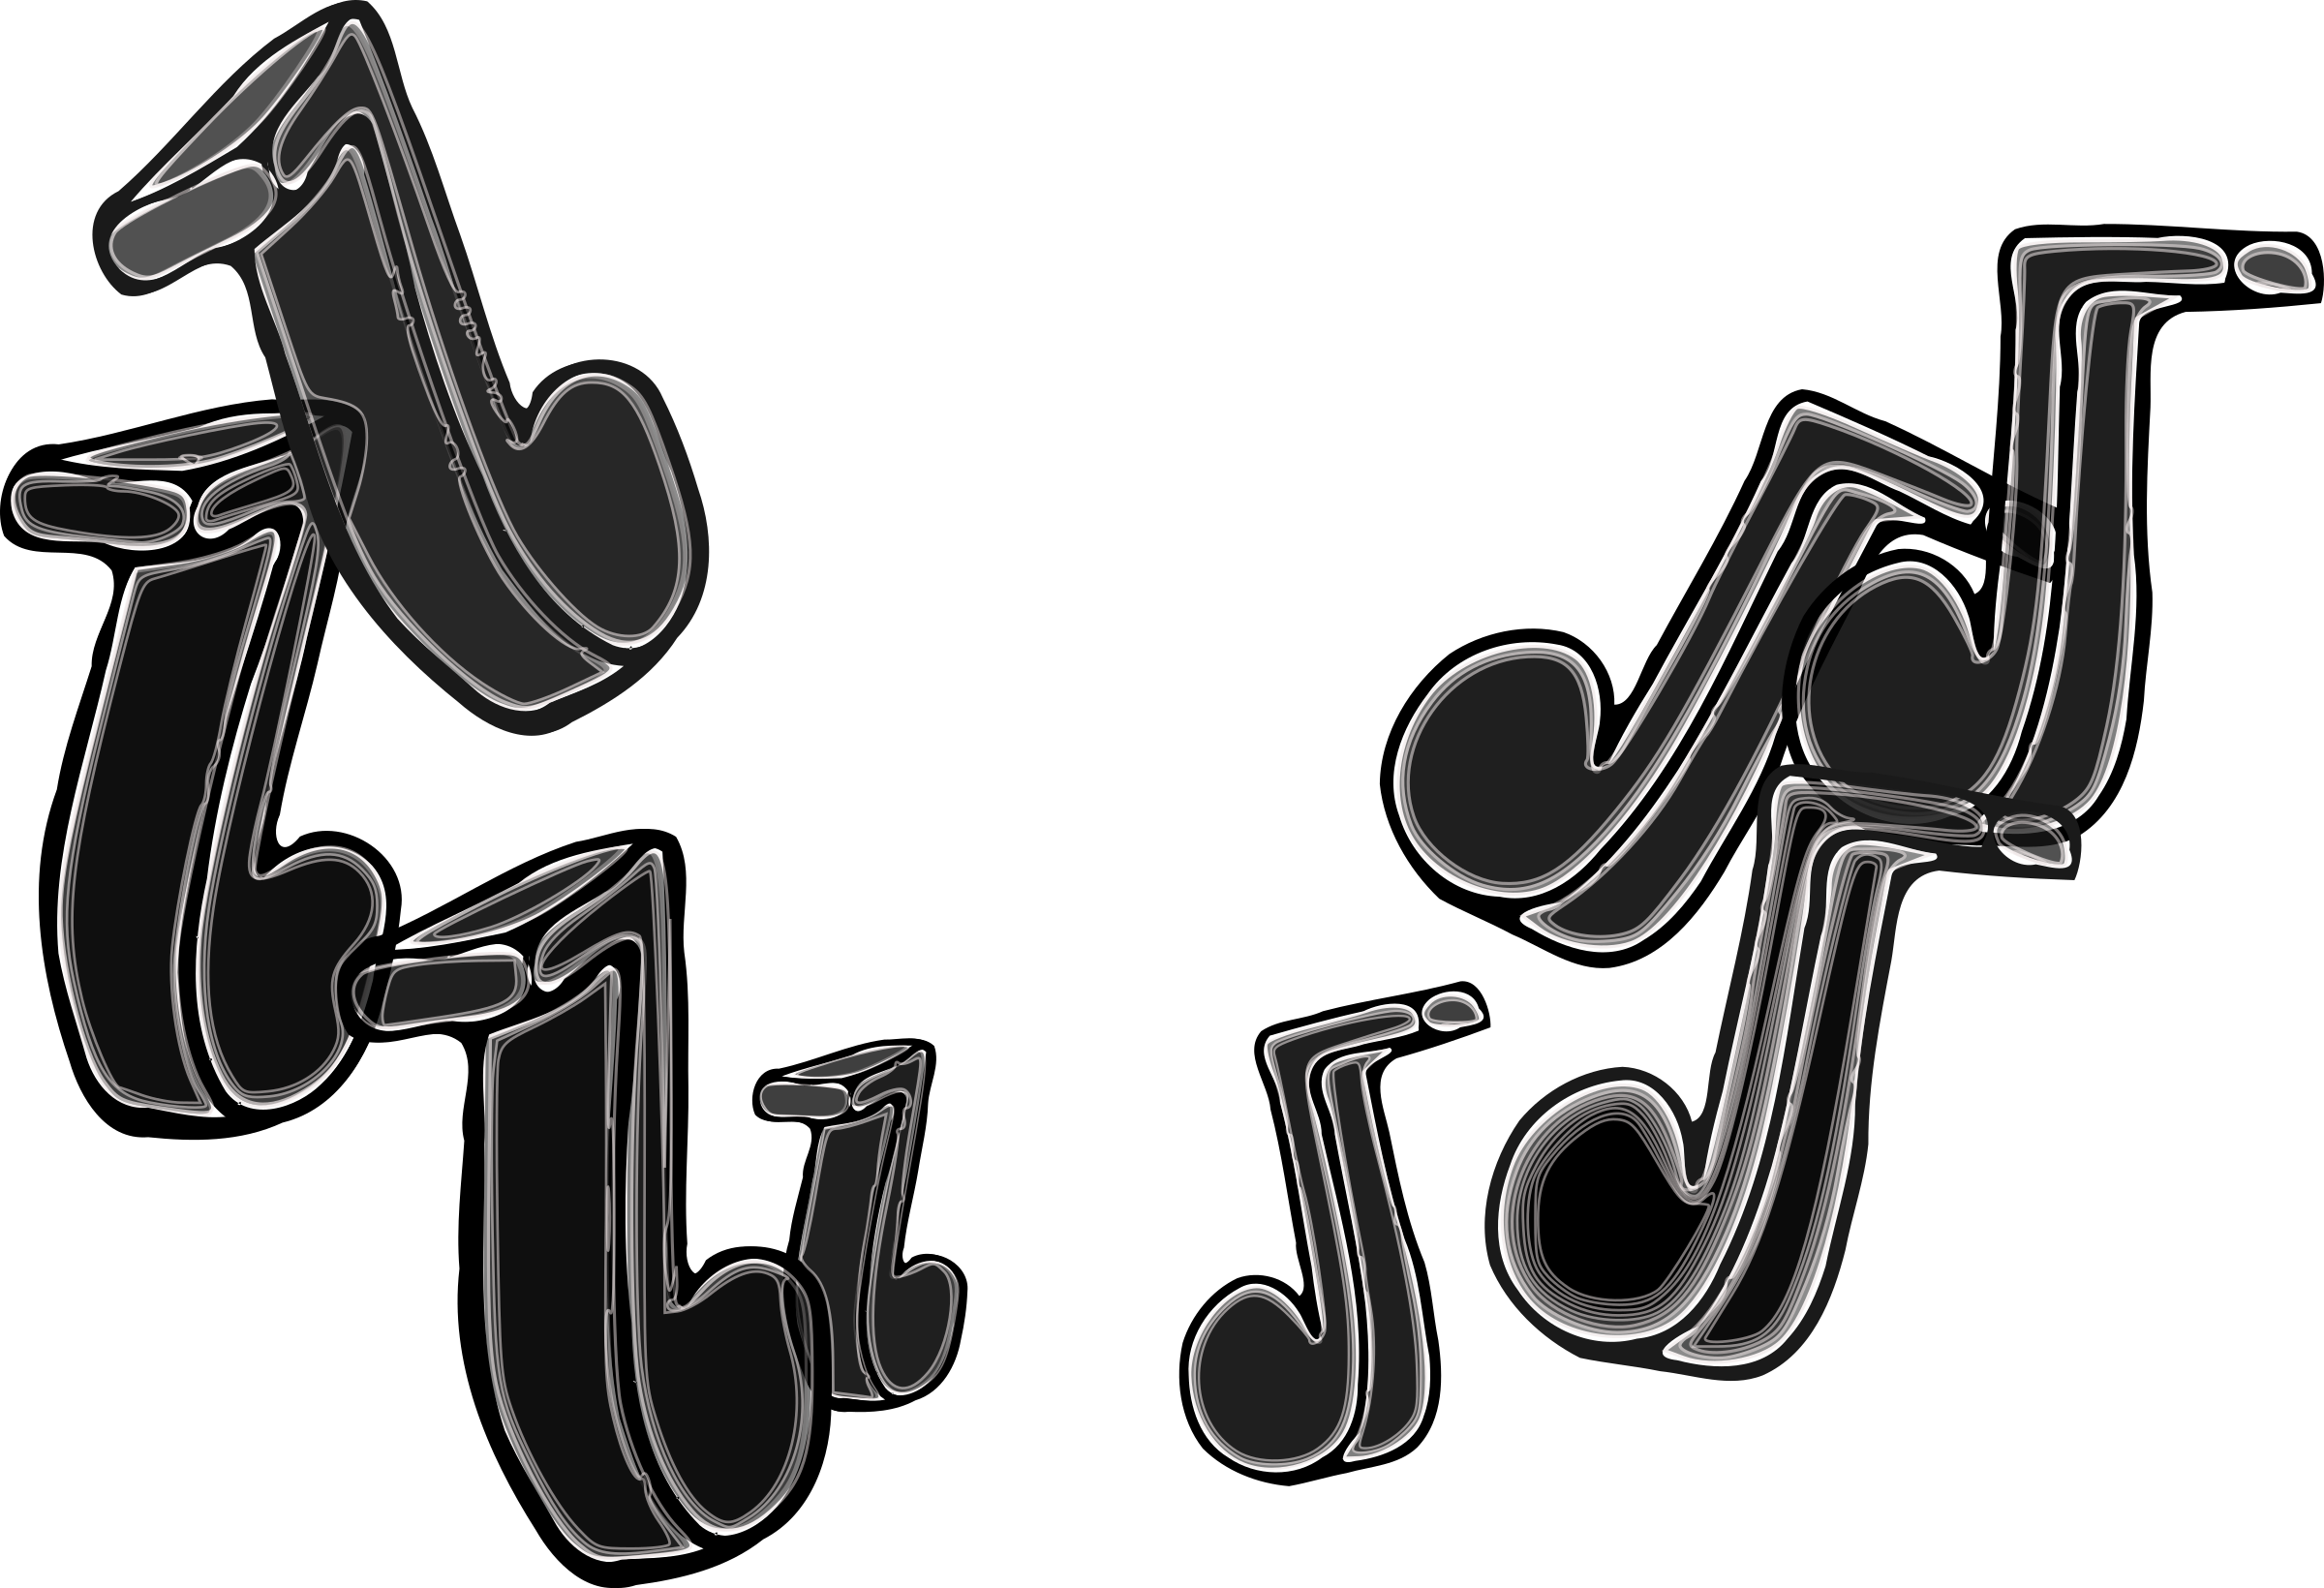 Music Notes All Black by camgee